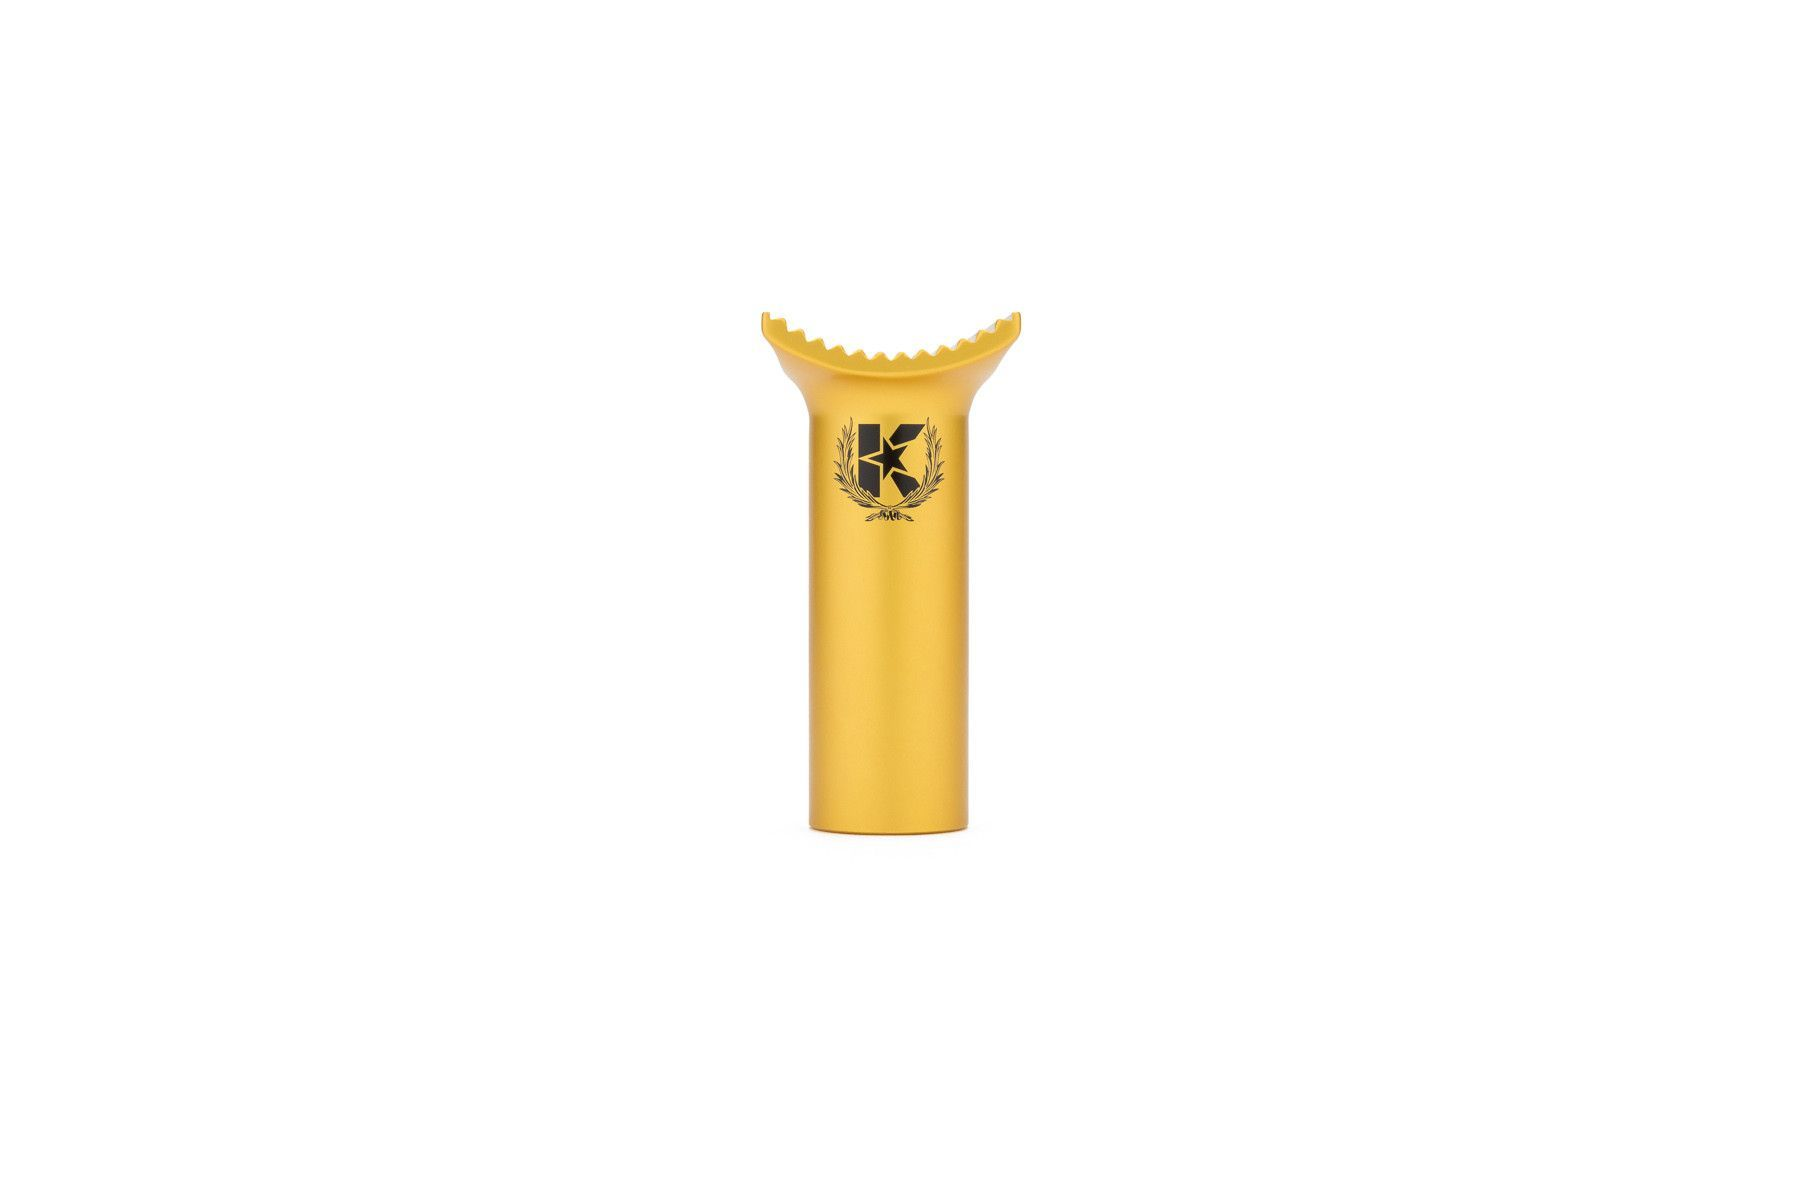 Kink Small Pivotal Post Matte Gold